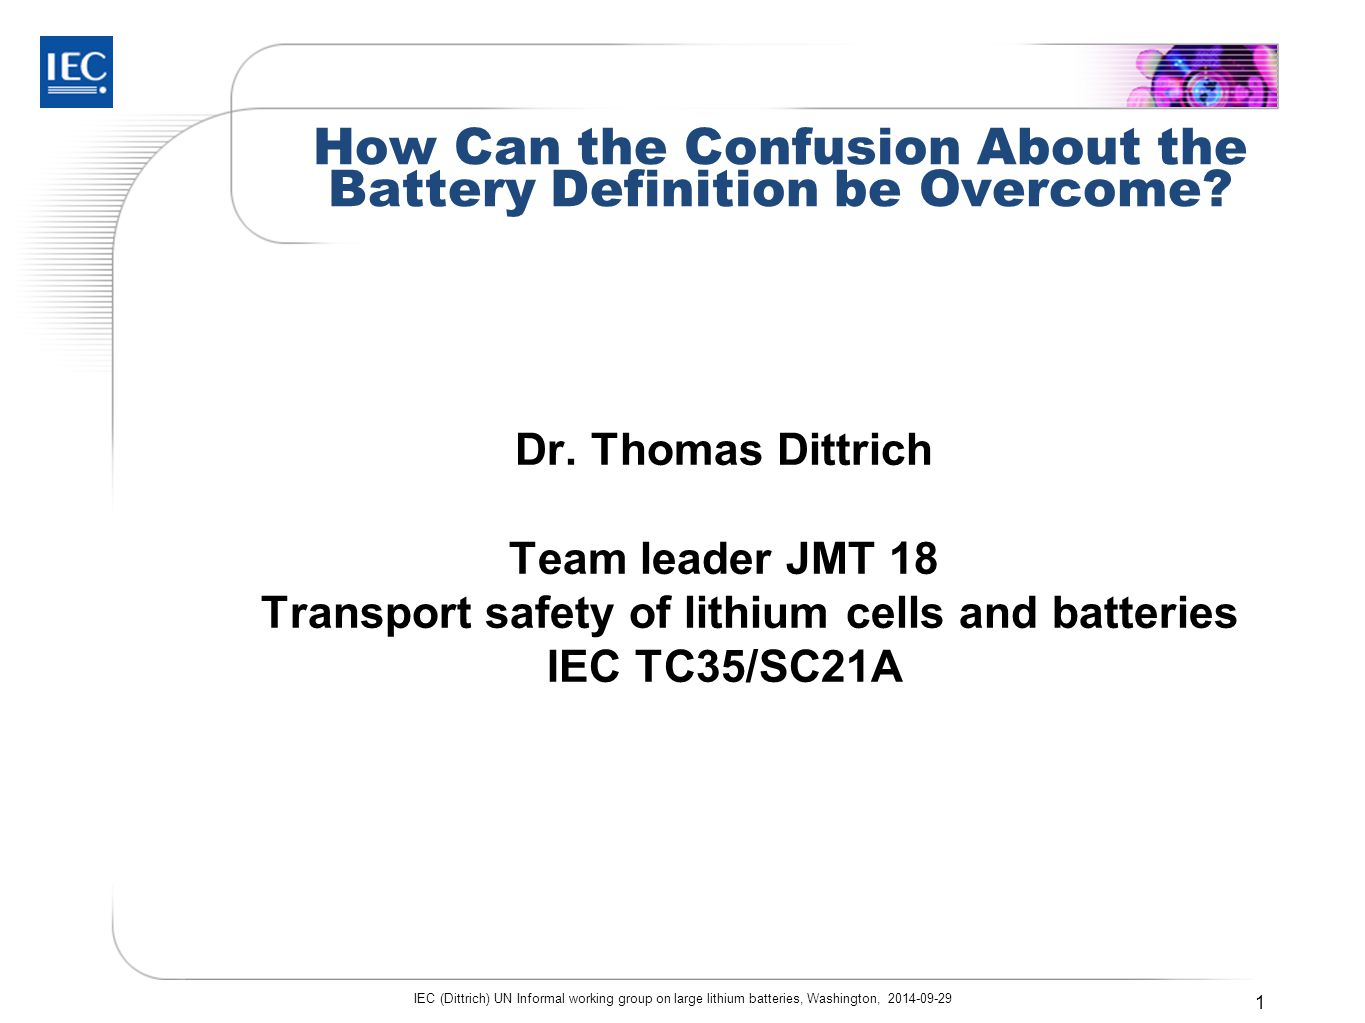 How Can the Confusion About the Battery Definition be Overcome